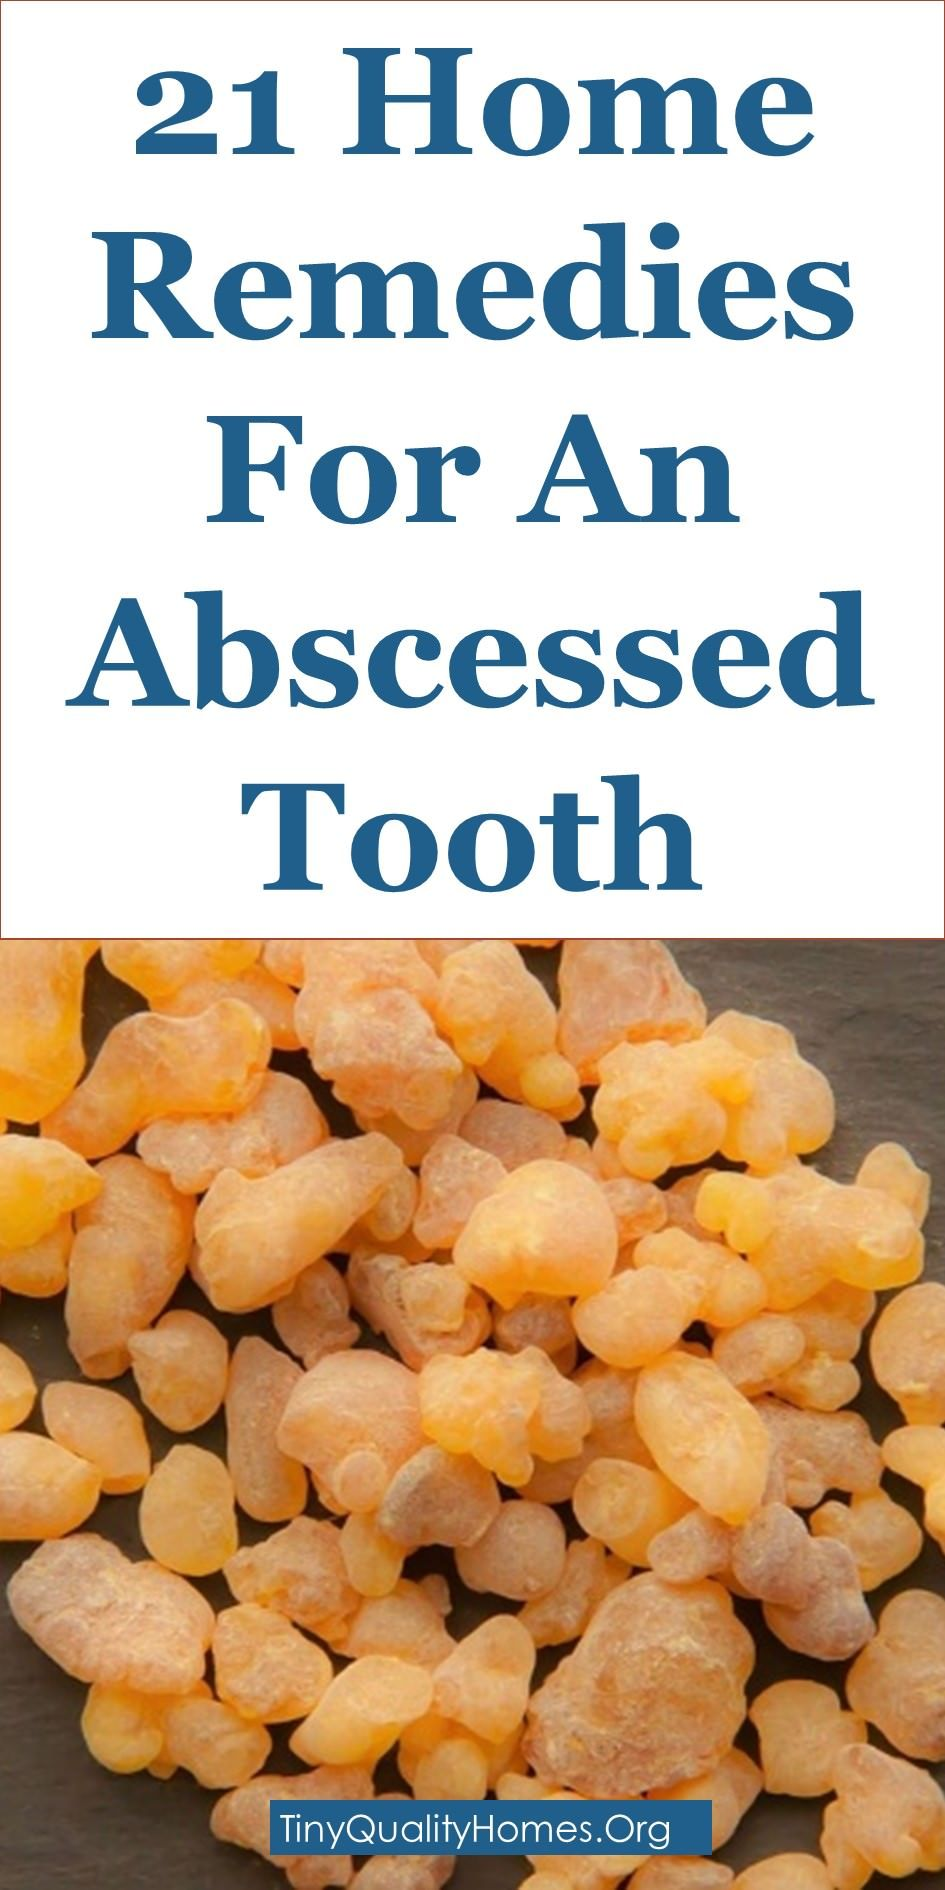 Home Remedies For An Abscessed Tooth  Home Remedies  Pinterest